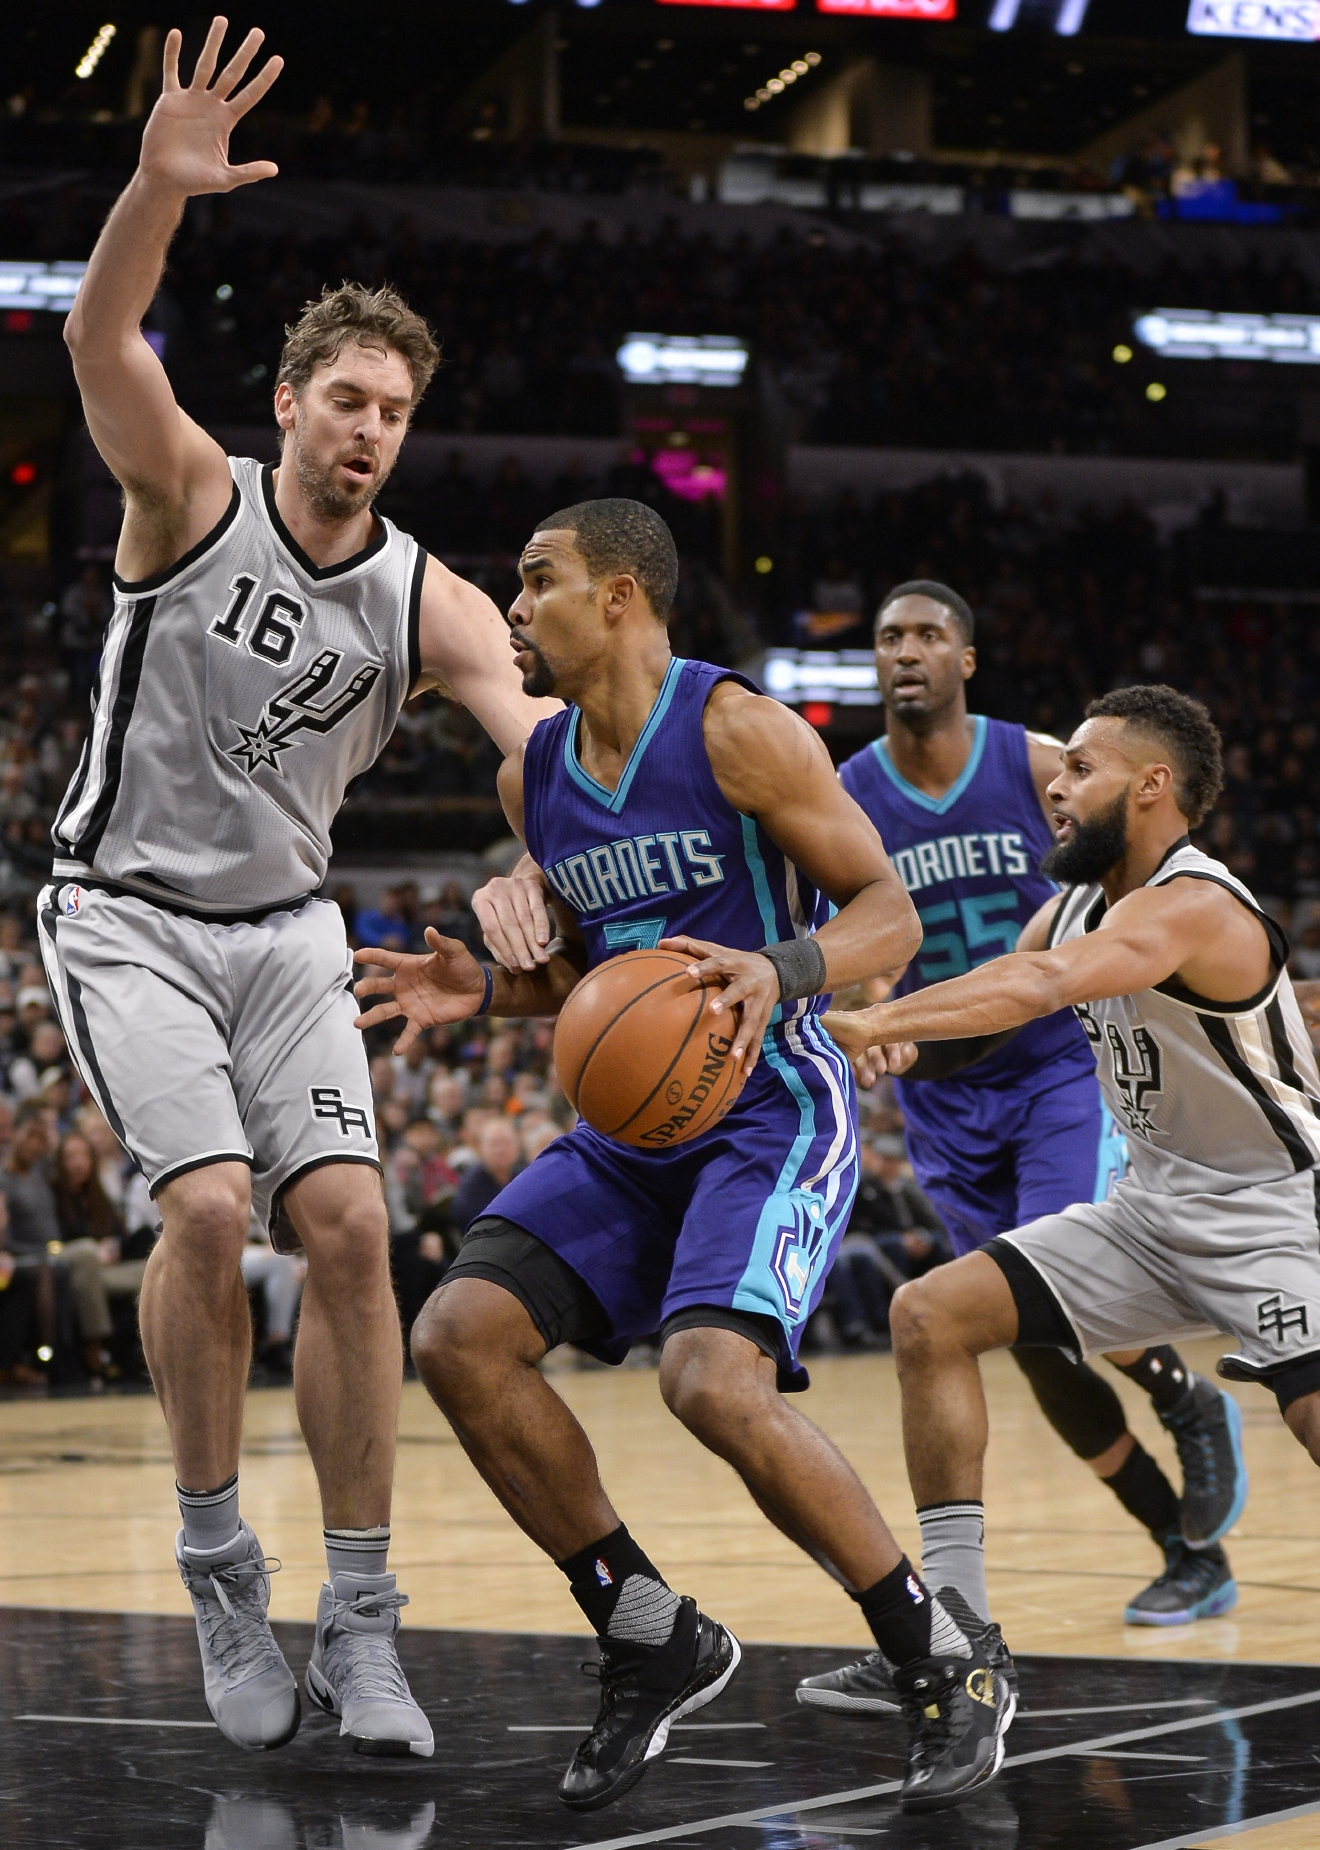 Charlotte Hornets guard Ramon Sessions, second from left, drives the lane against San Antonio Spurs center Pau Gasol, left, of Spain, and Spurs guard Patty Mills, right, of Australia, as Hornets center Roy Hibbert looks on during the first half of an NBA basketball game, Saturday, Jan. 7, 2017, in San Antonio. (AP Photo/Darren Abate)